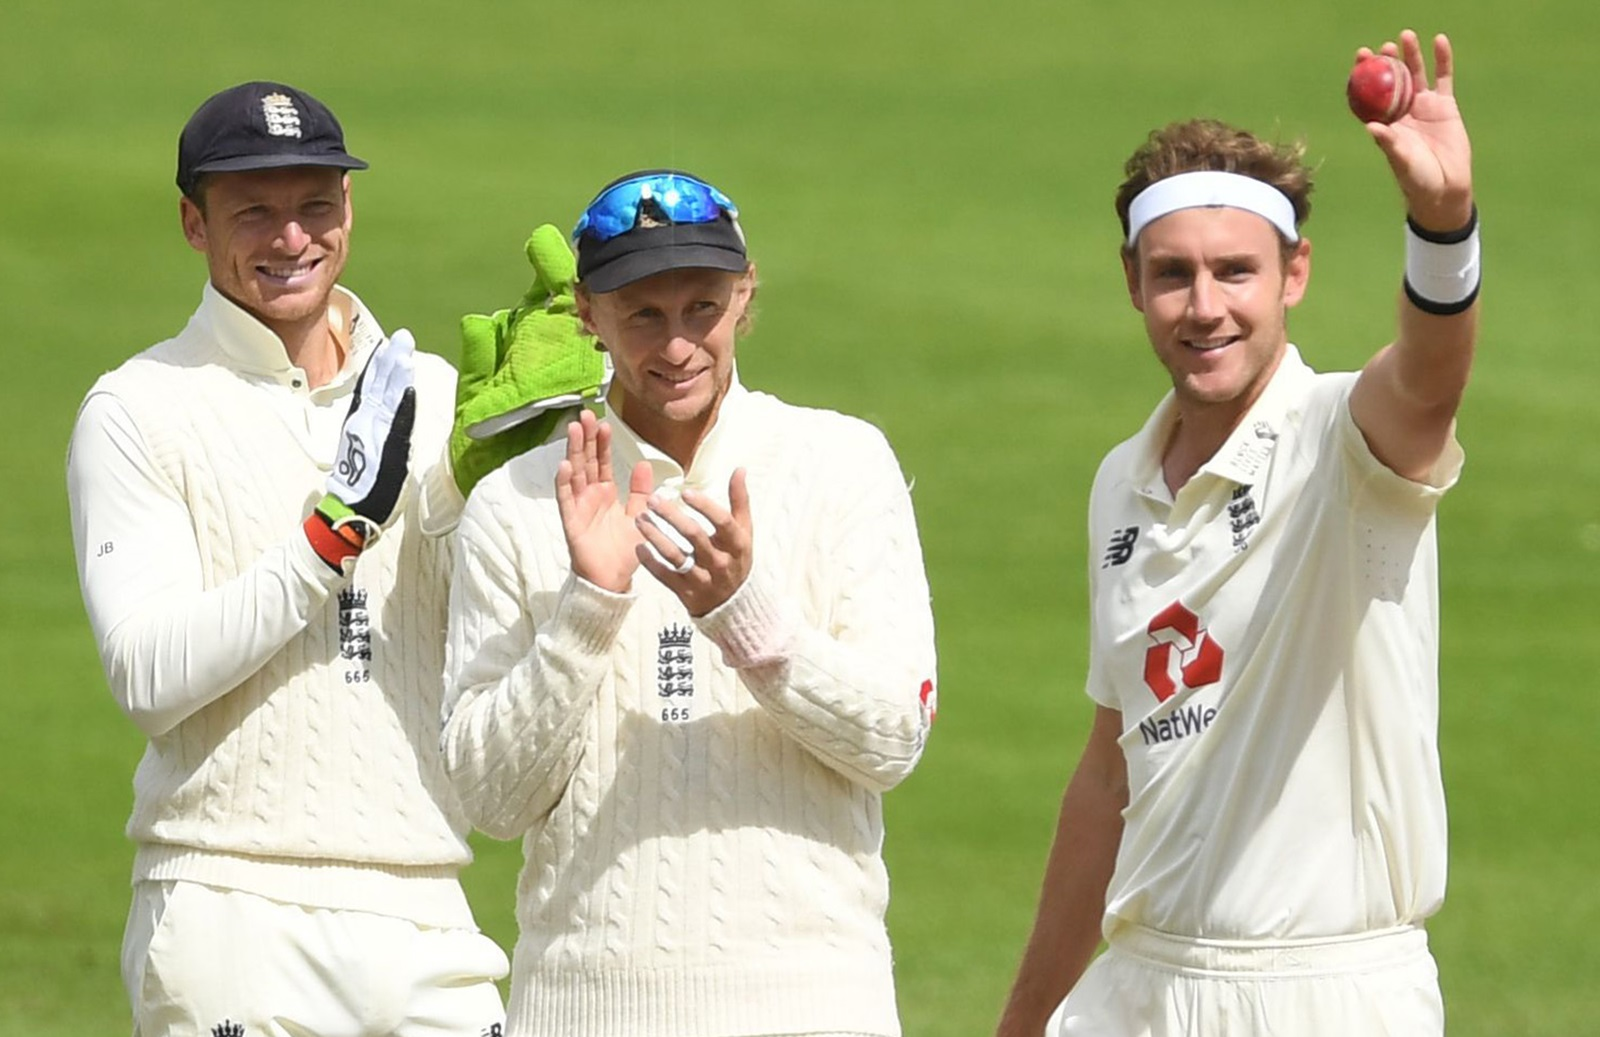 Stuart Broad is the seventh bowler to reach the 500 Test wickets milestone